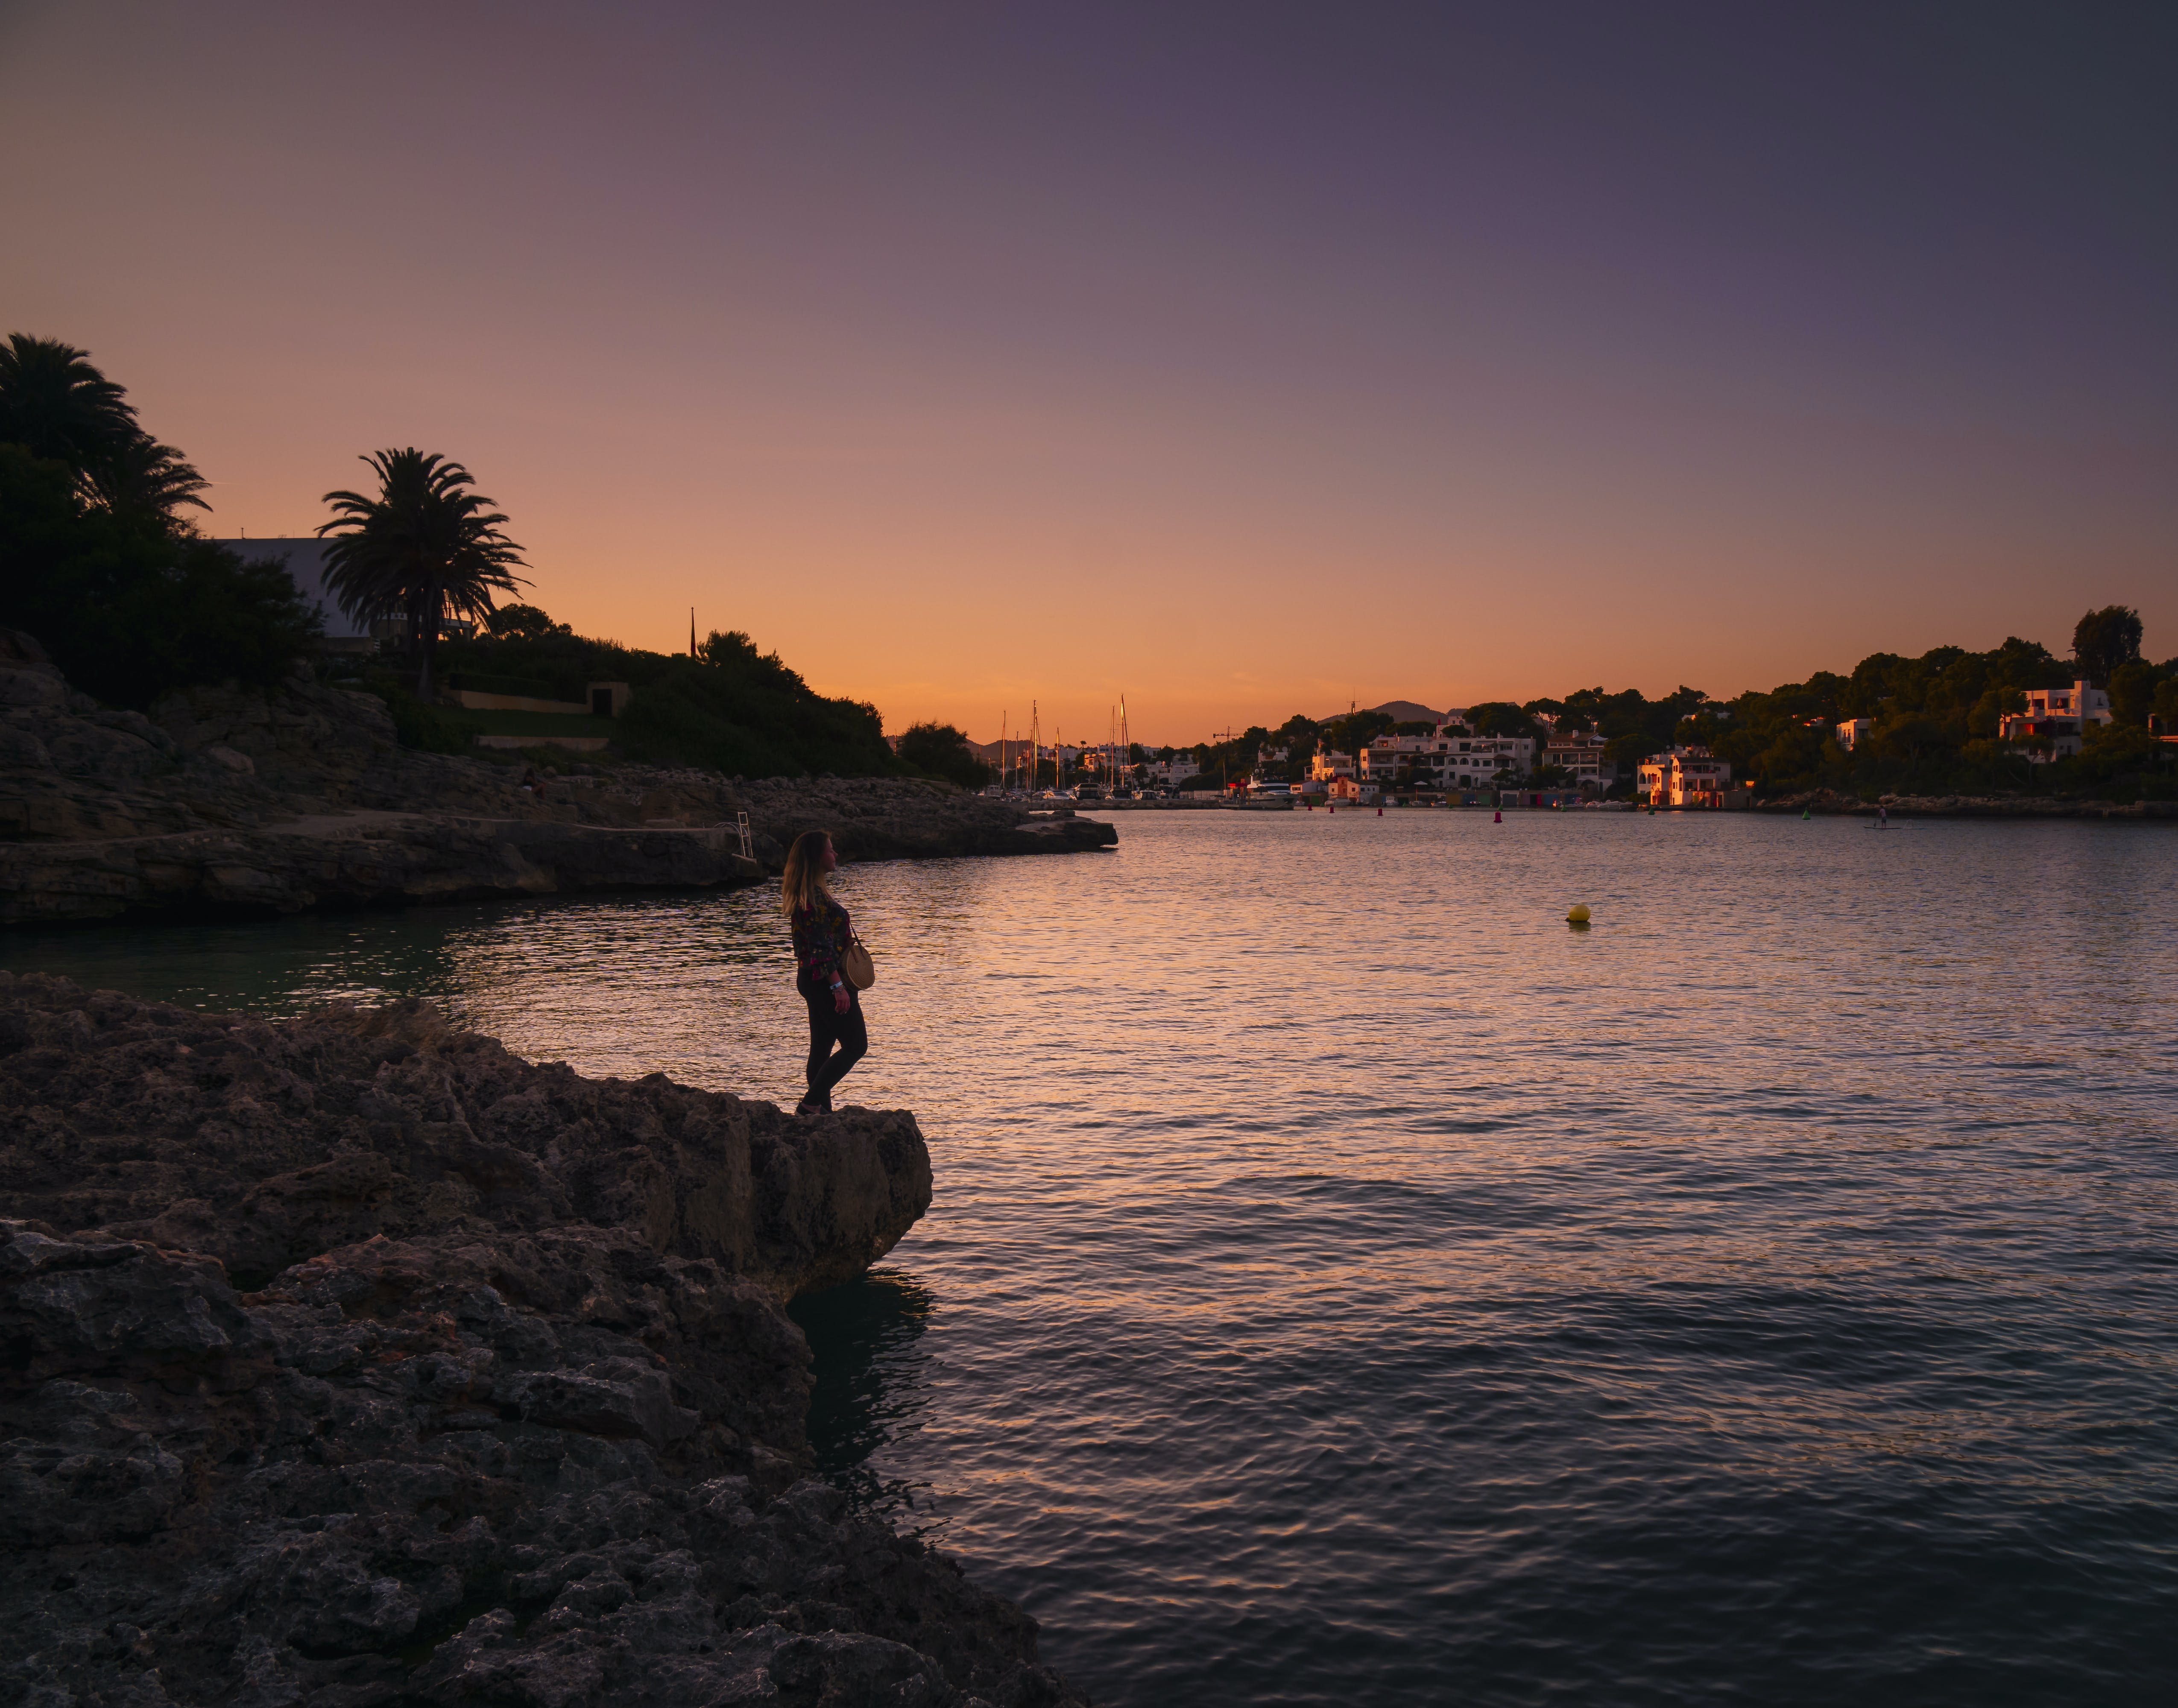 Woman Standing Near Body of Water at Night